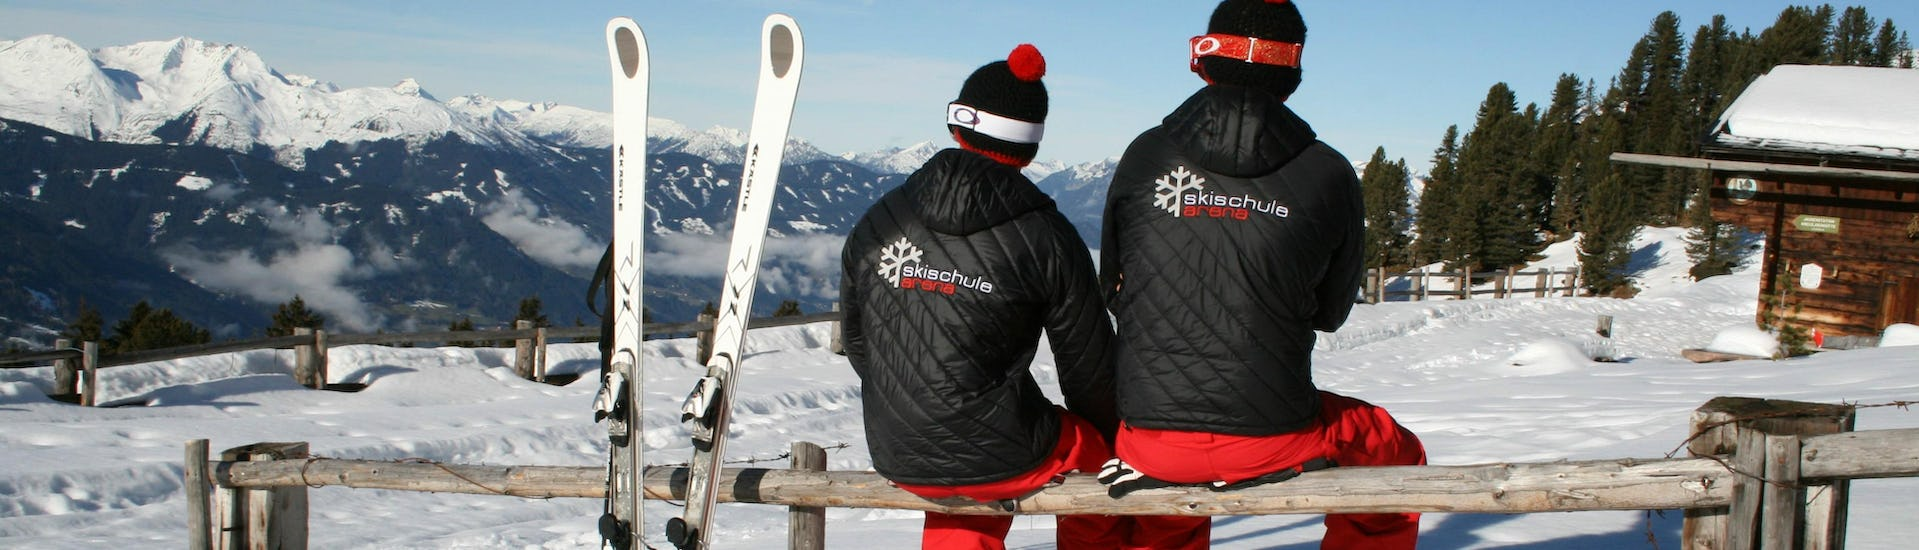 Two ski instructors from the ski school Skischule Arena in Zell am Ziller are preched on a wooden fence, looking out over the beautiful mountain scenery of the Zillertal Valley.